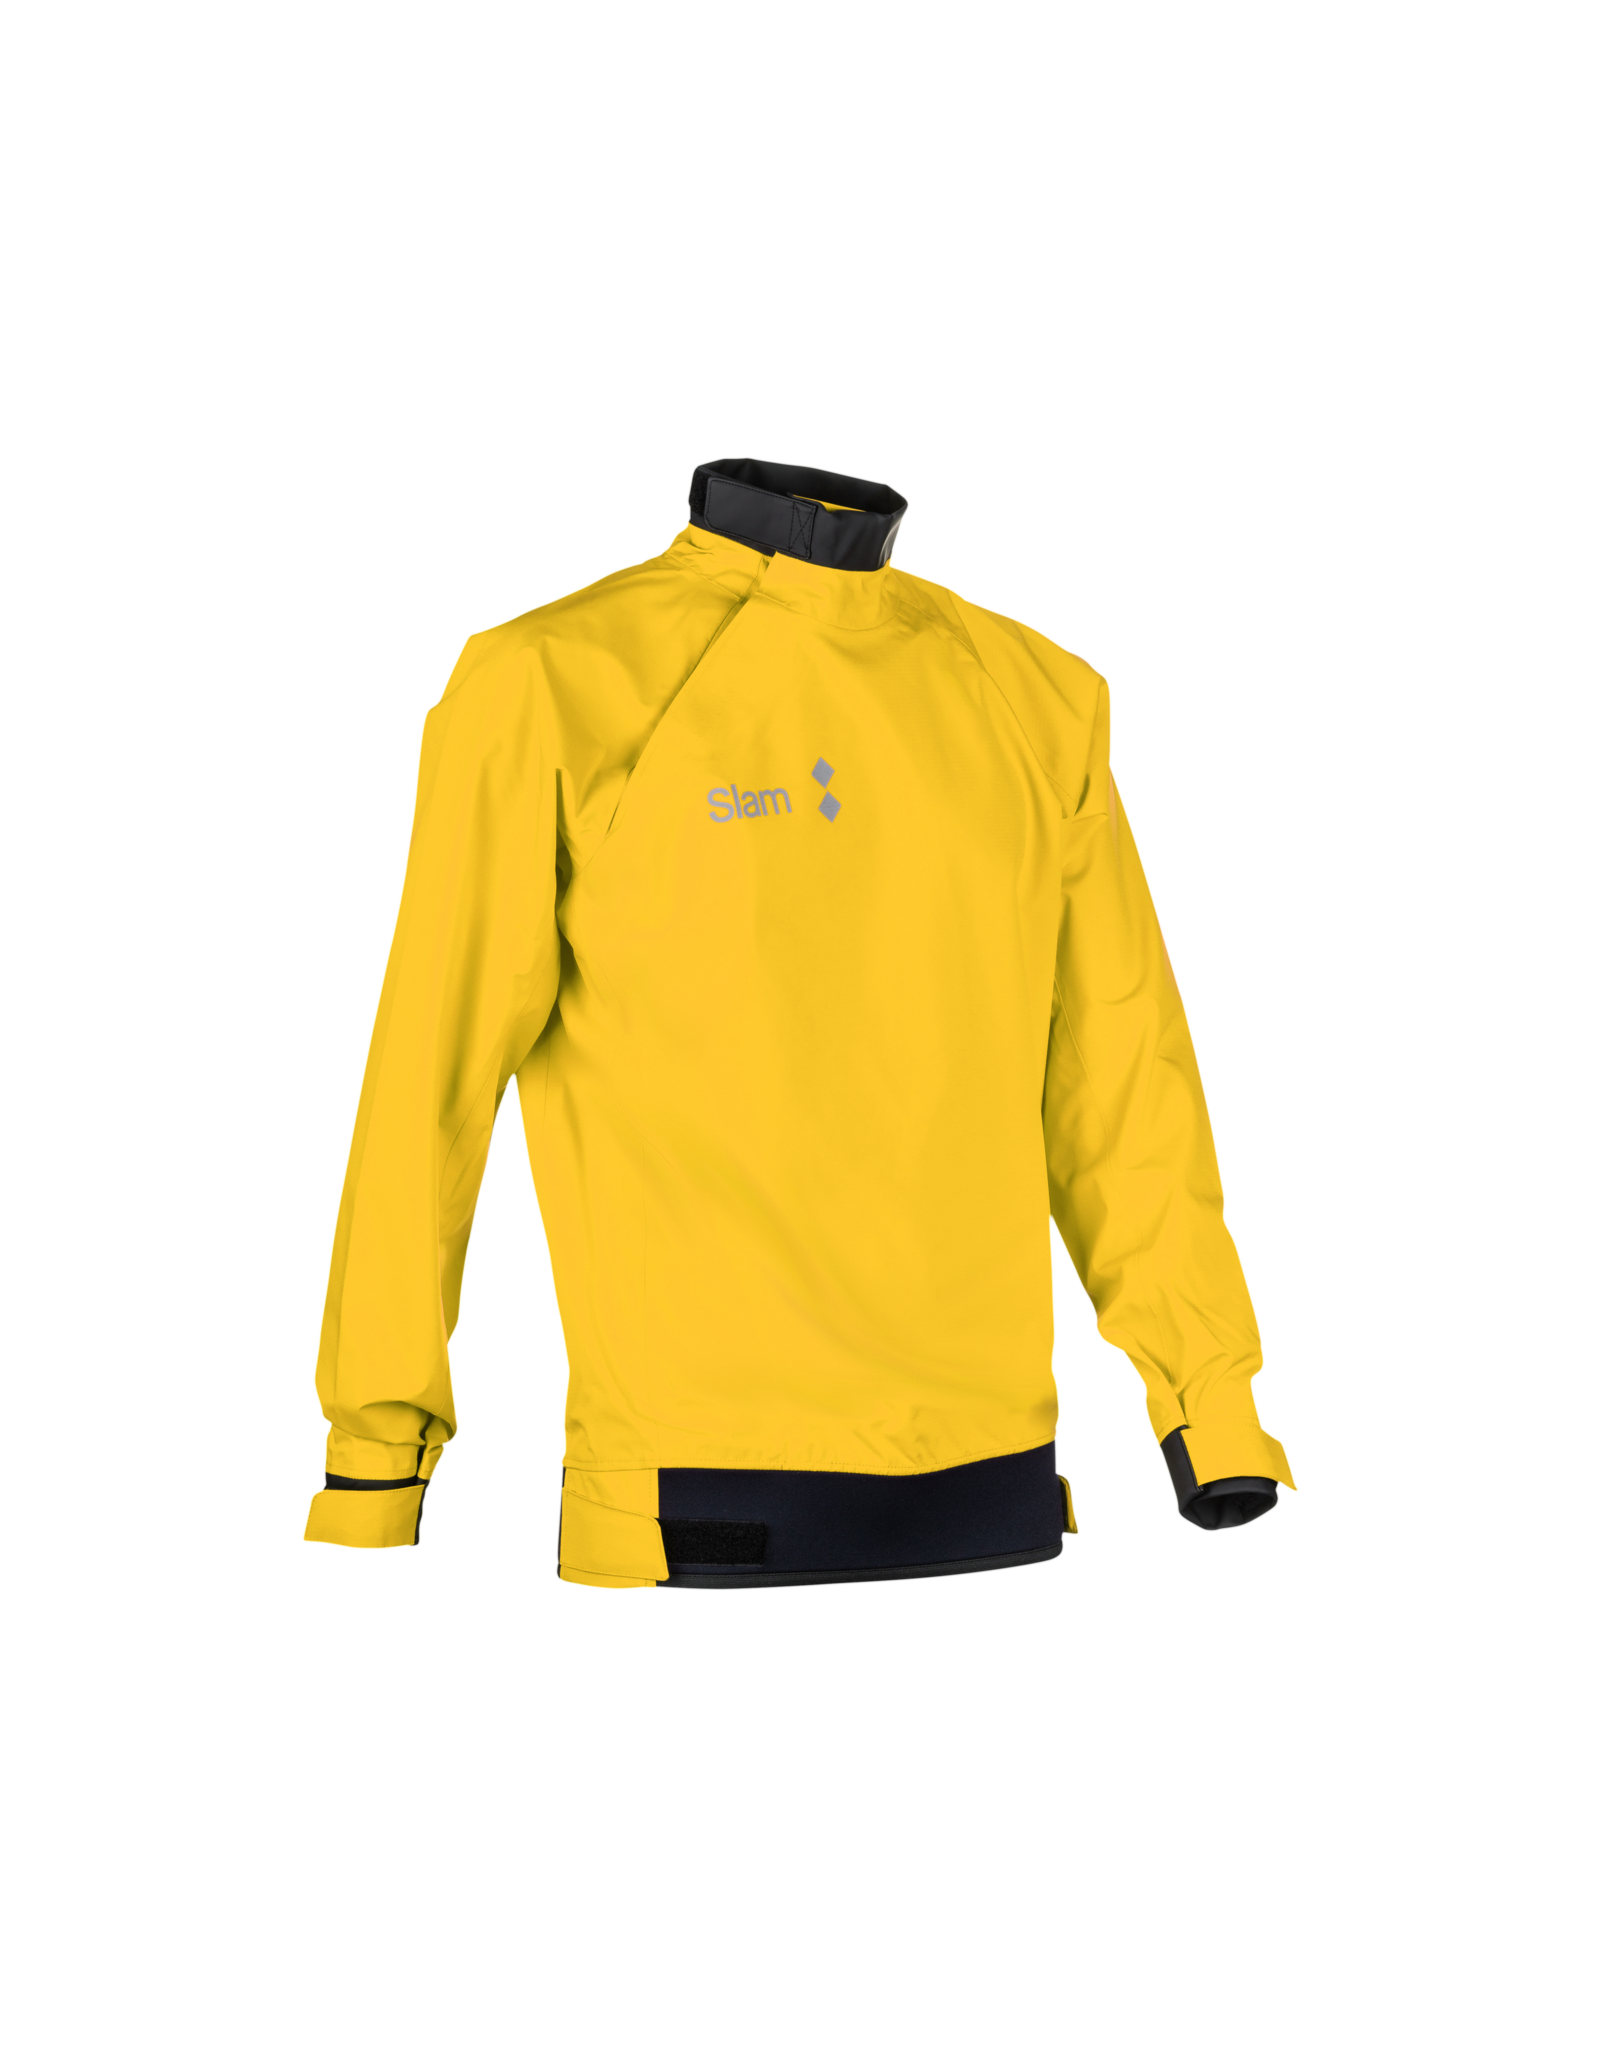 Slam WIN-D 1 Sailing Spray Top - Yellow (E37)